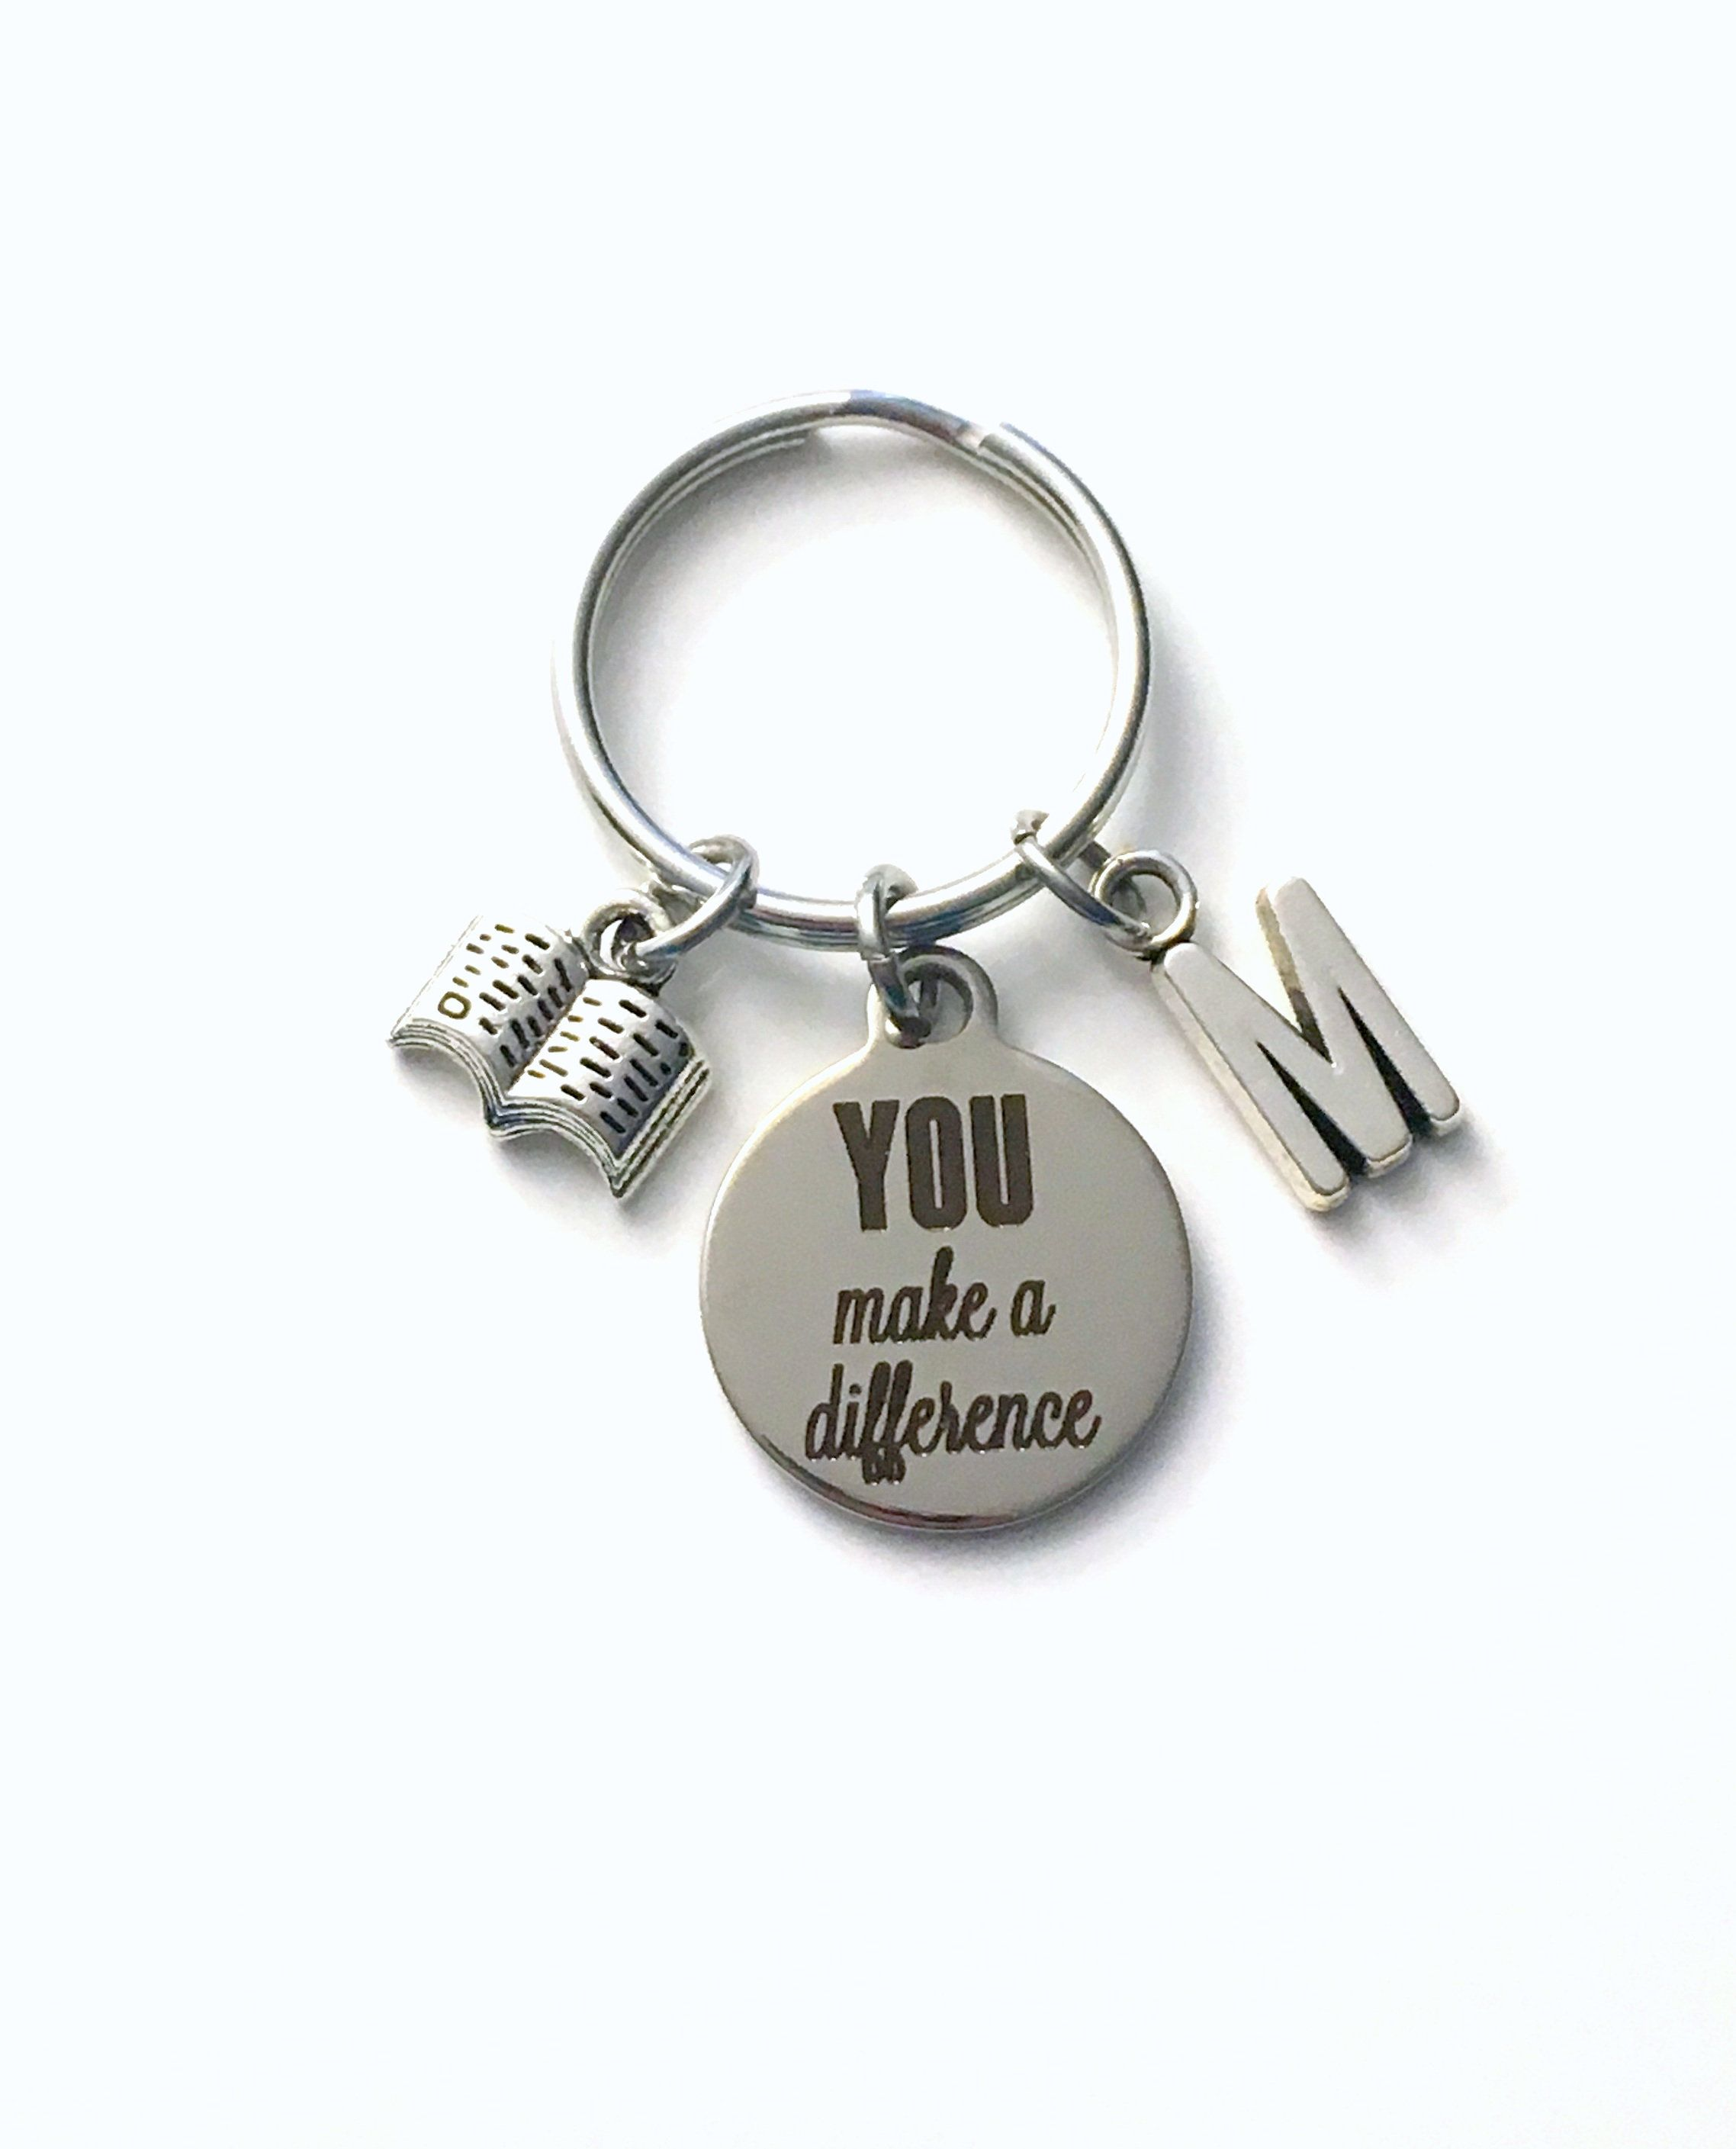 Stainless Steel Keychains Keyring Silver Inspiration Word Xmas Gifts For Her Him